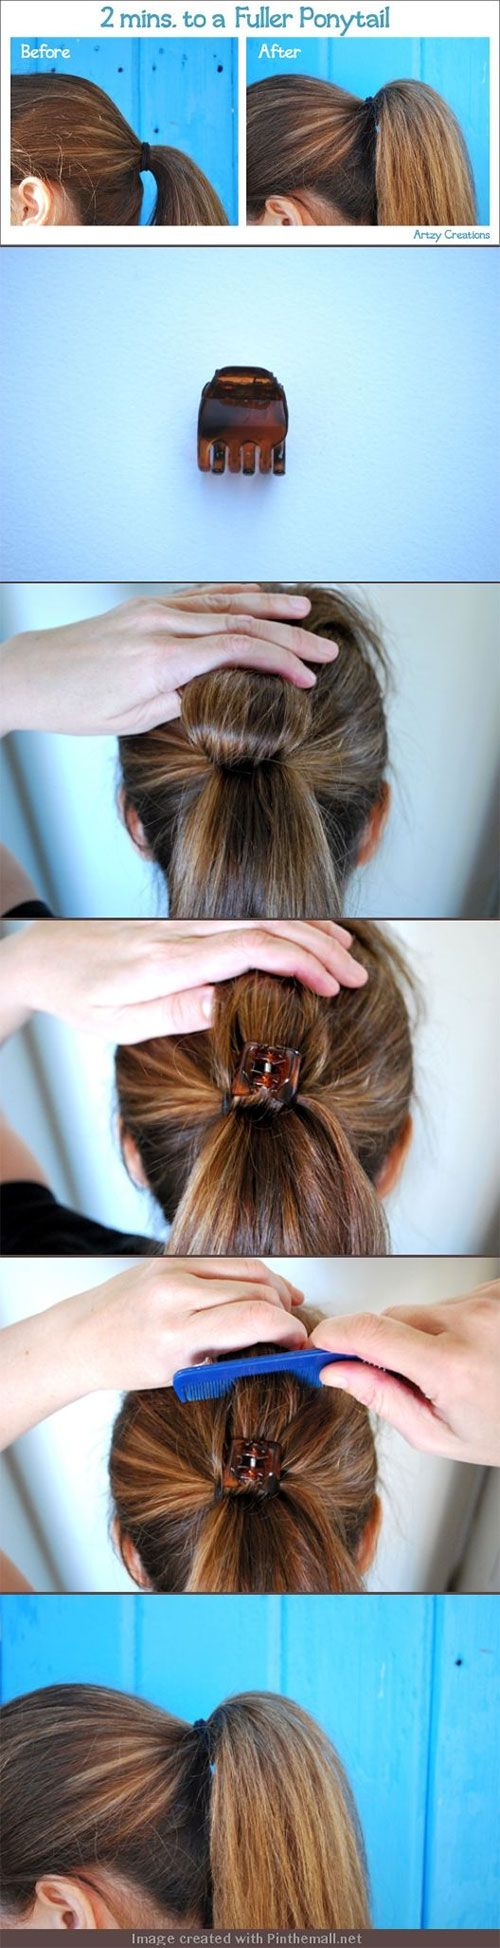 make-ponytail-bigger-more-volume-with-clip-hack